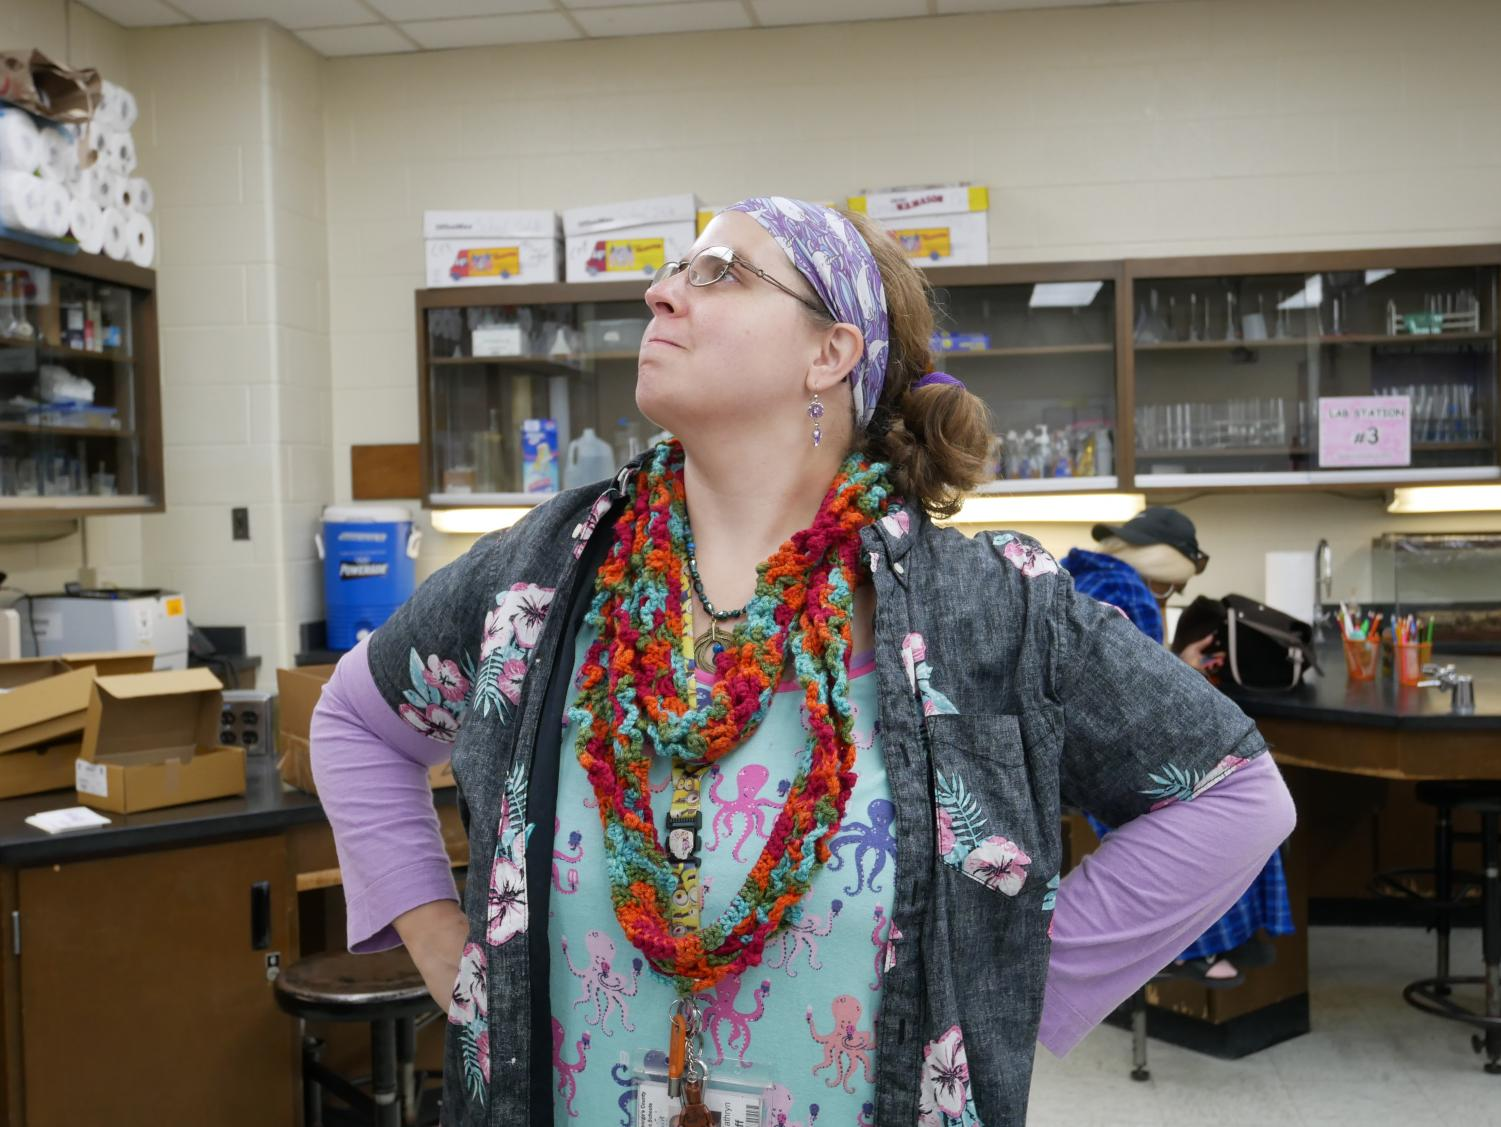 Ms. Komar's Crazy Day outfit.  Photographed by Rebekah Chun